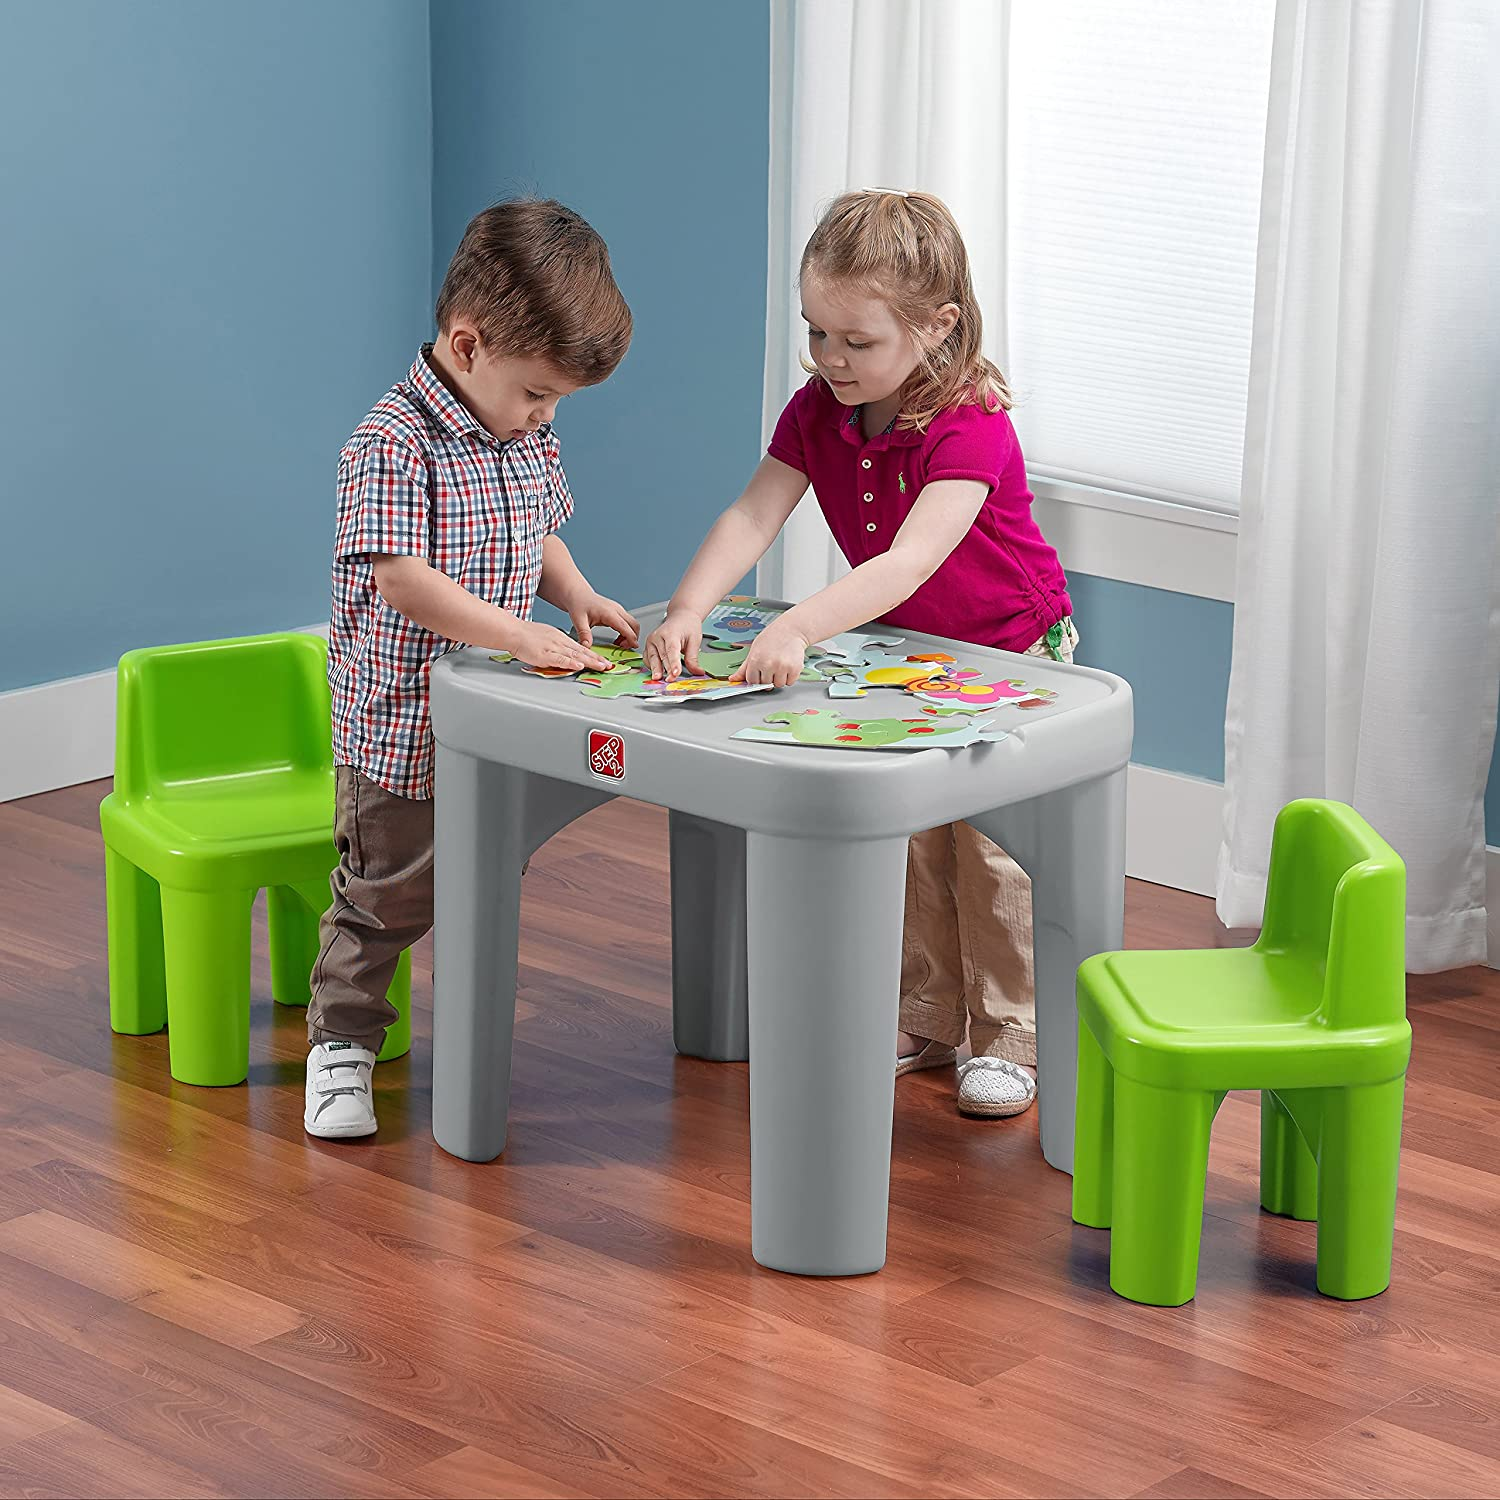 Amazon.com: Step2 Mighty My Size Table and Chairs Set: Toys & Games